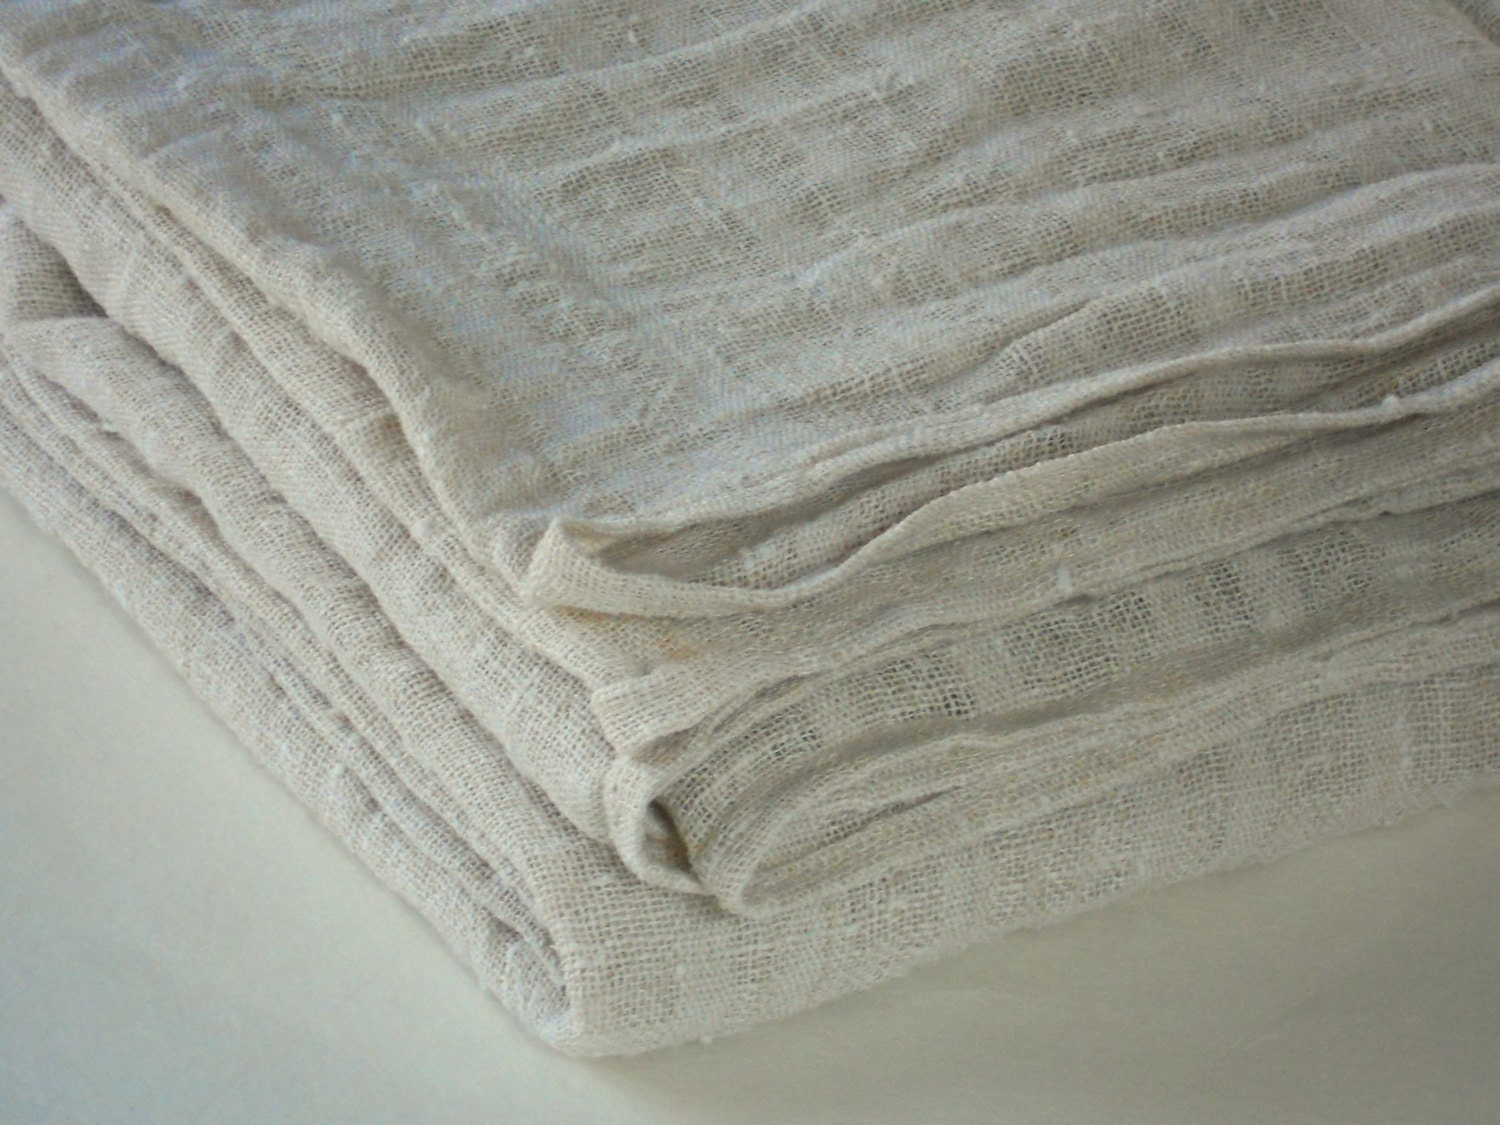 Linen Burlap Tablecloth Cream Washed Wrinkled Rustic By